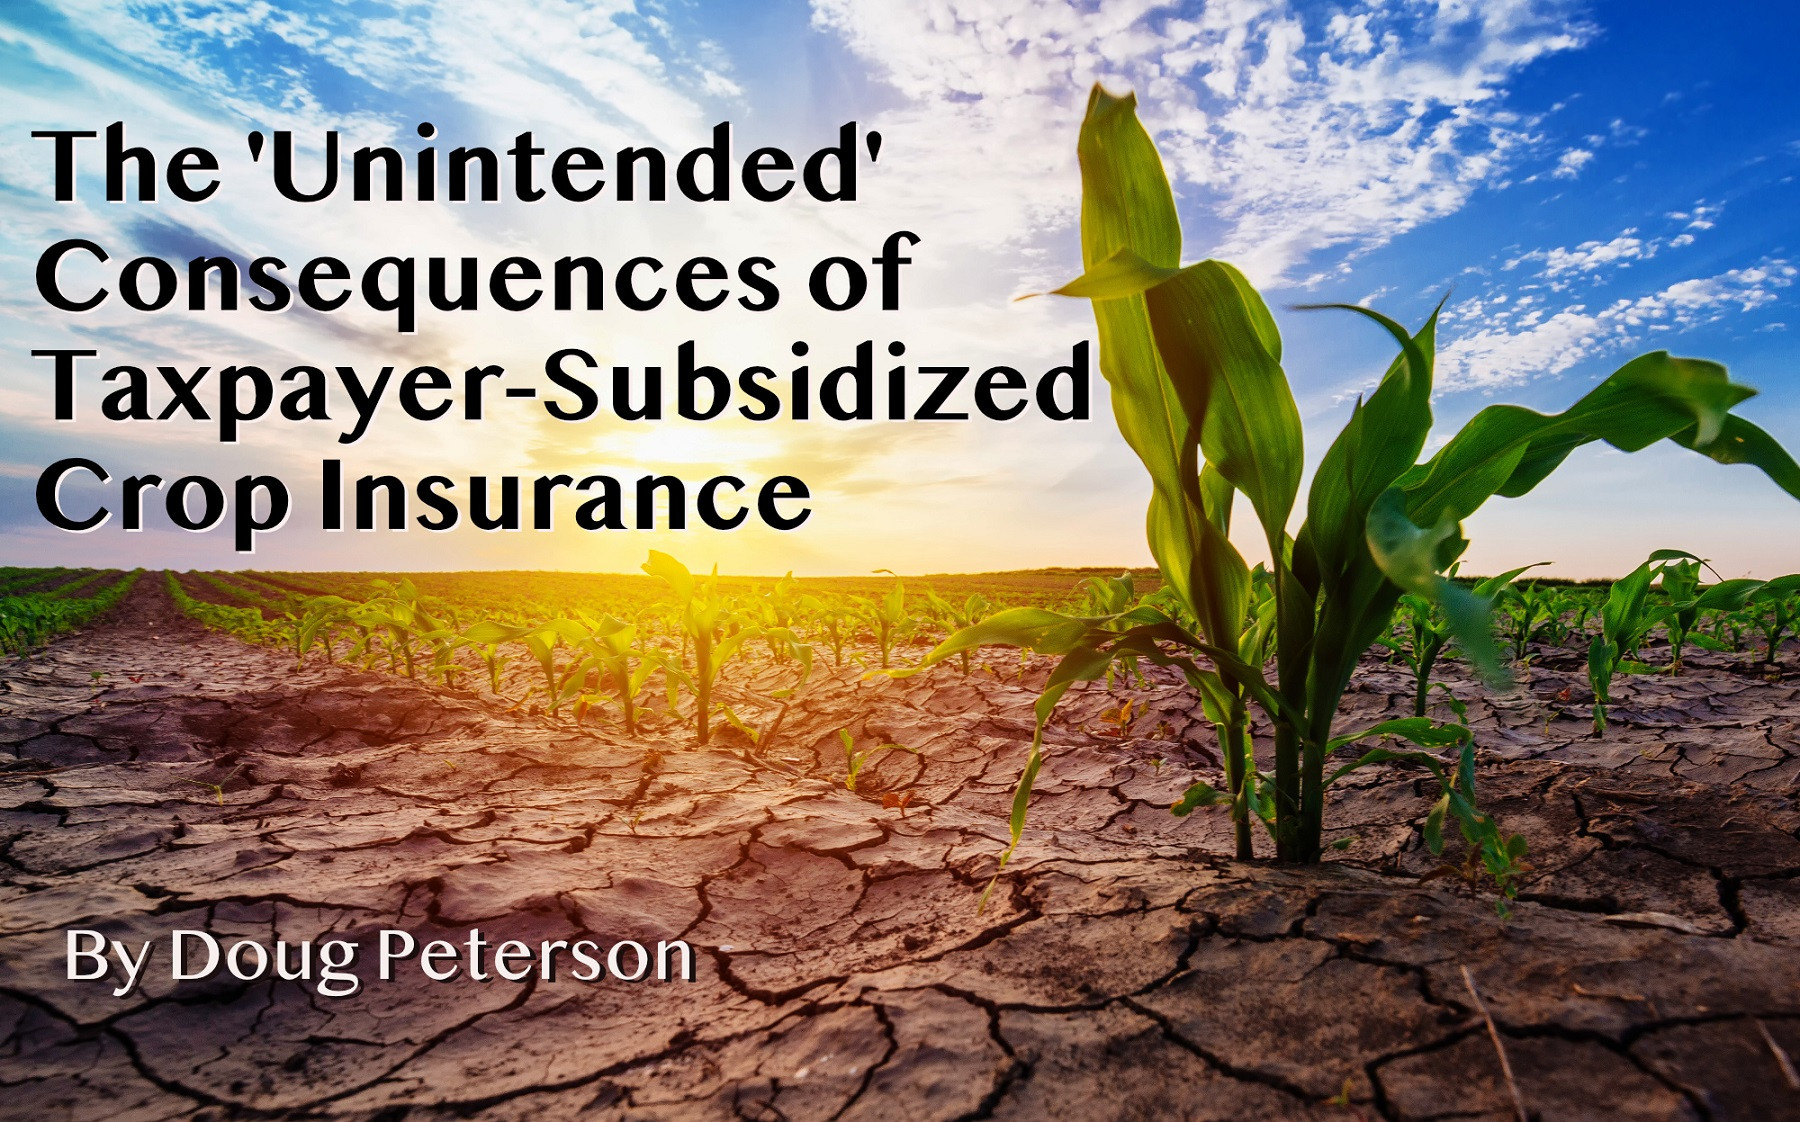 The 'Unintended' Consequences of Taxpayer-Subsidized Crop Insurance